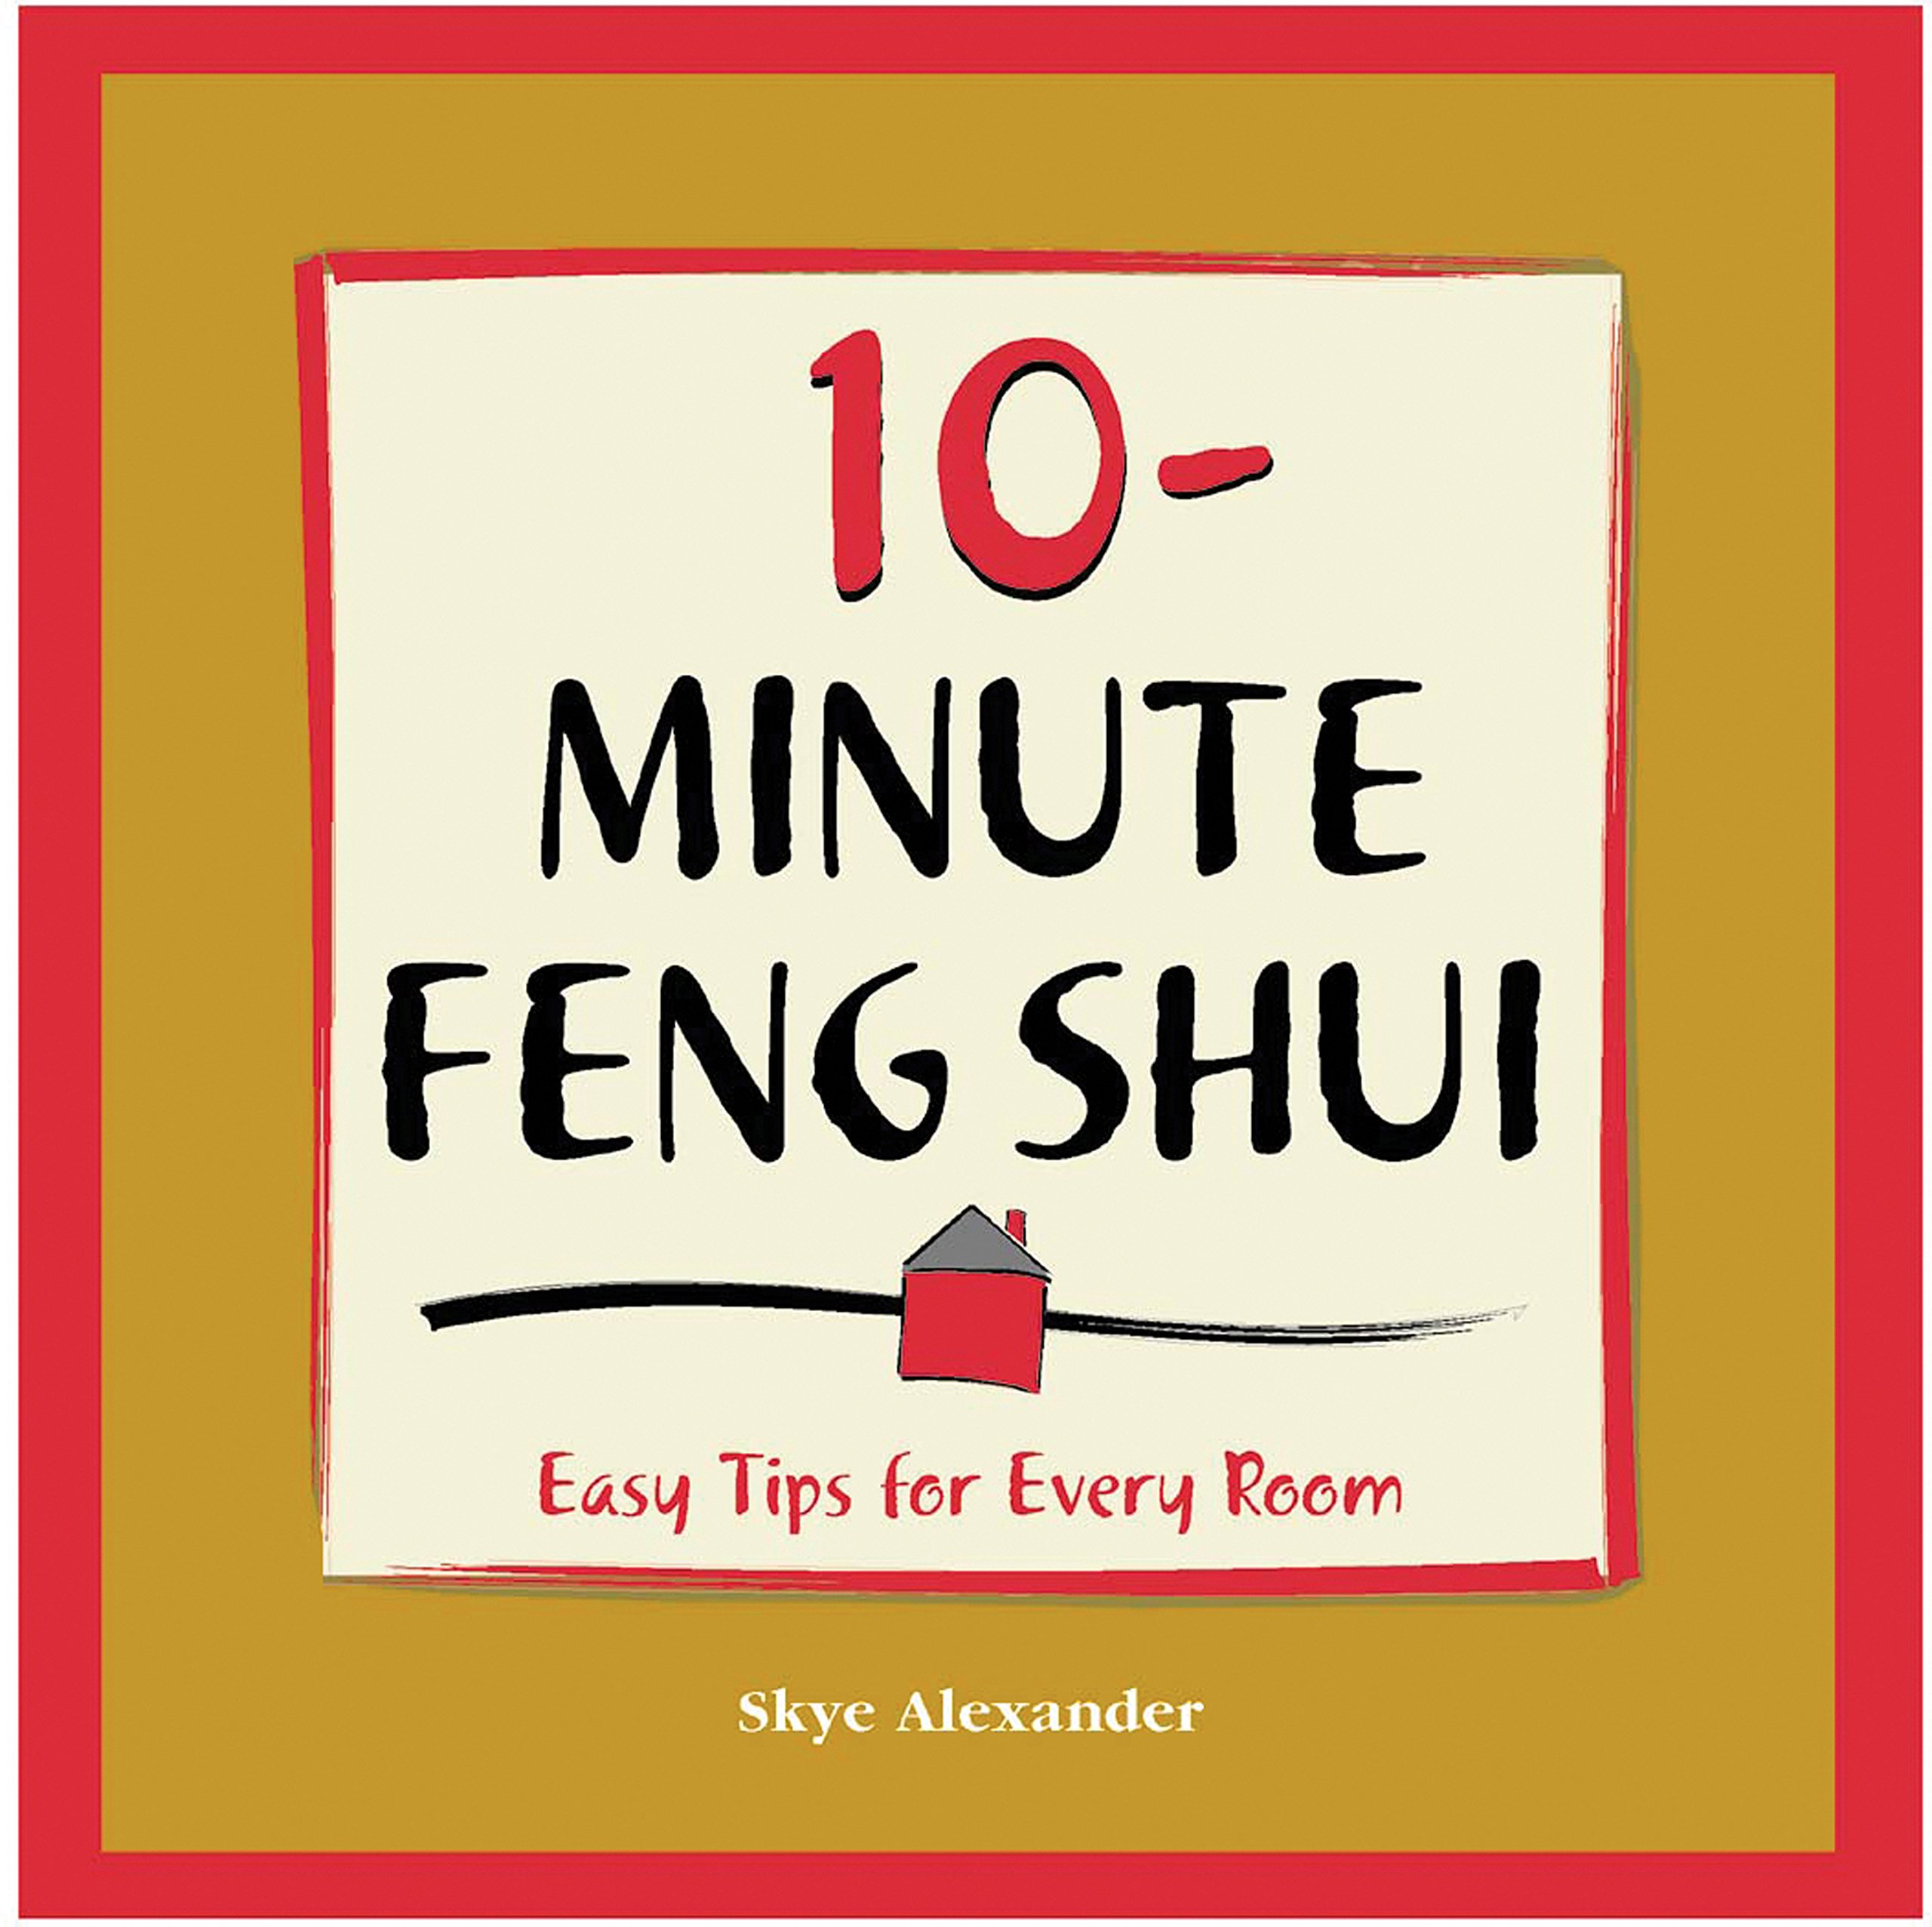 10-Minute Feng Shui: Alexander, Skye: 0080665128806: Amazon.com: Books